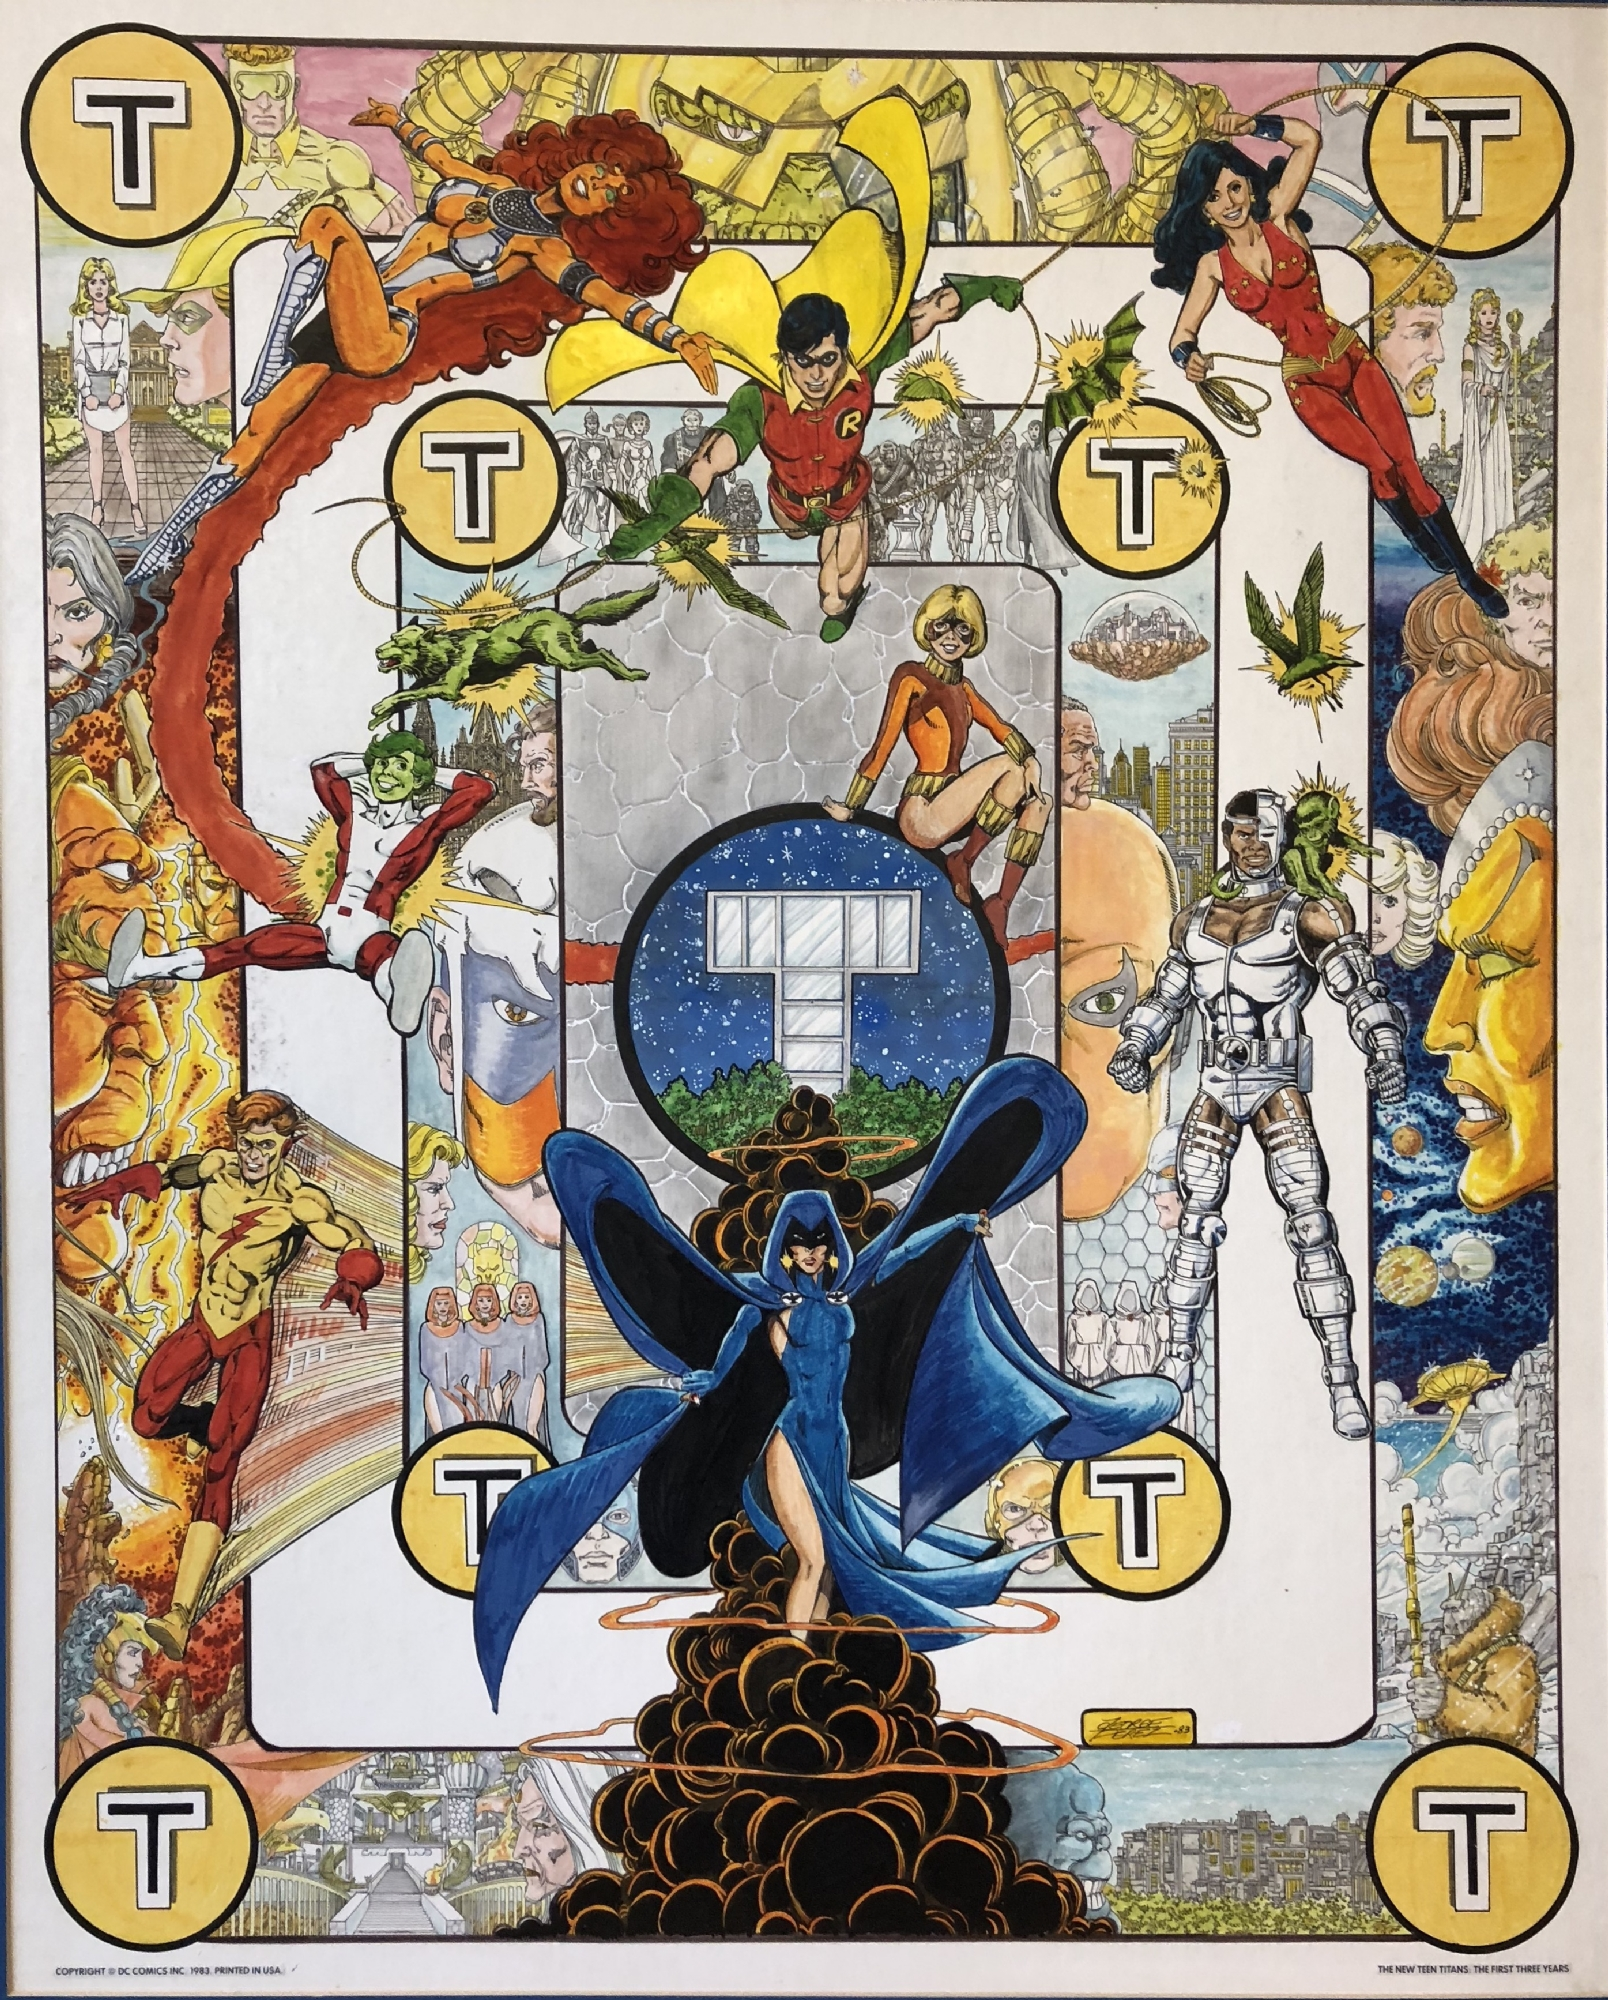 The New Teen Titans The First Three Years Poster Art, In -7824